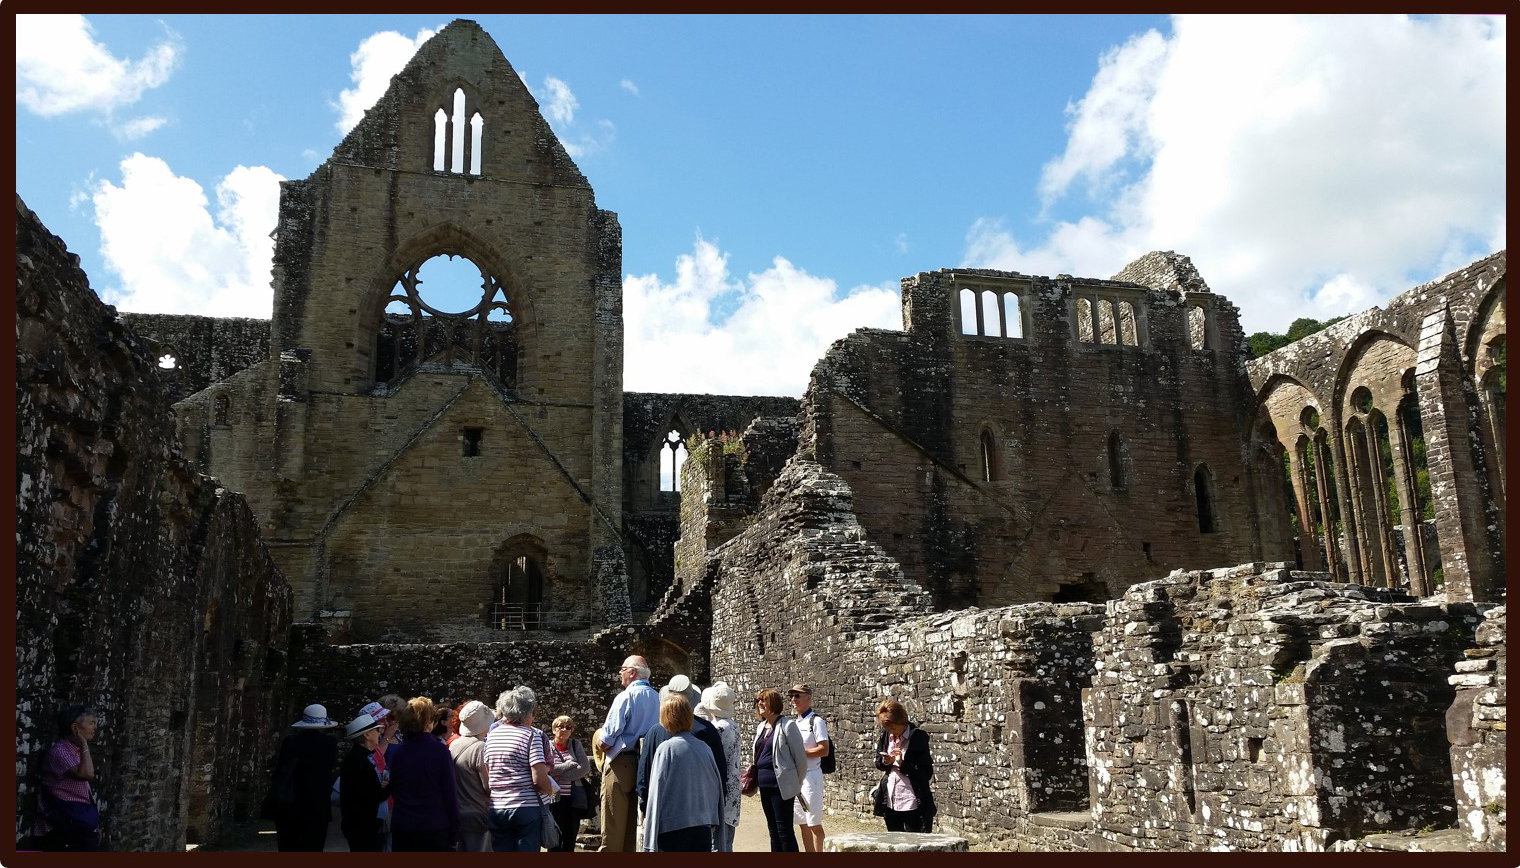 Tour of Tintern Abbey - July 2019